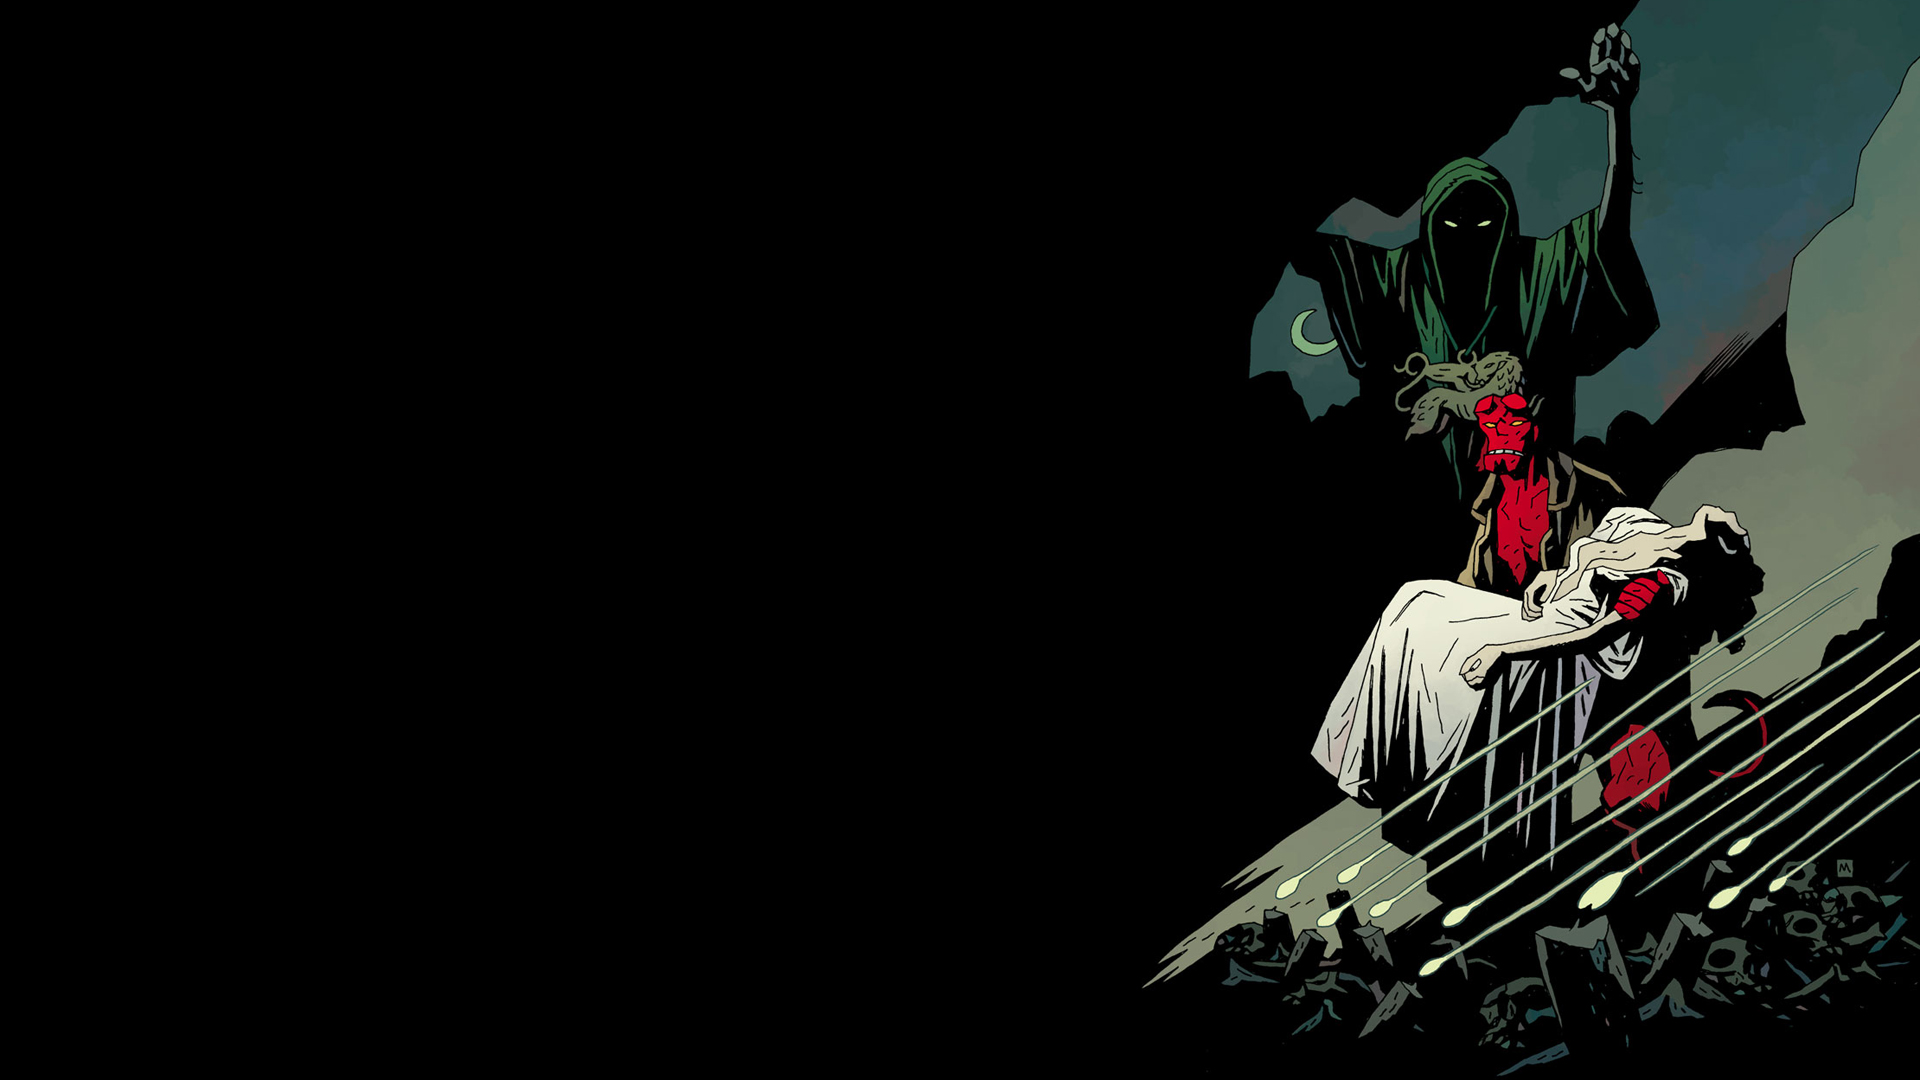 Hellboy: The Bride Of Hell Full HD Wallpaper and Background | 1920x1080 | ID:402135